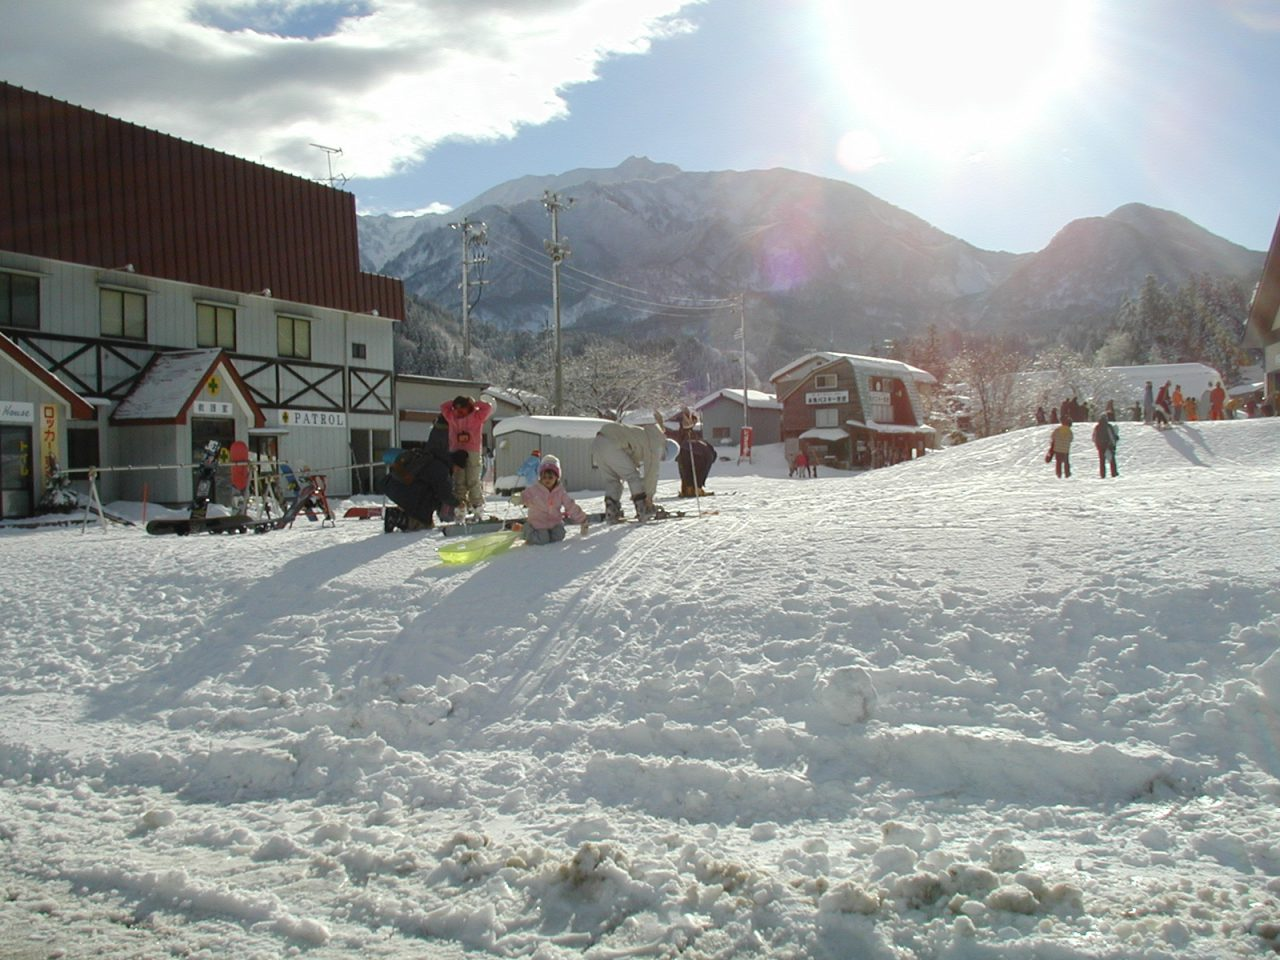 Itoigawa Seaside Valley Ski Lodge